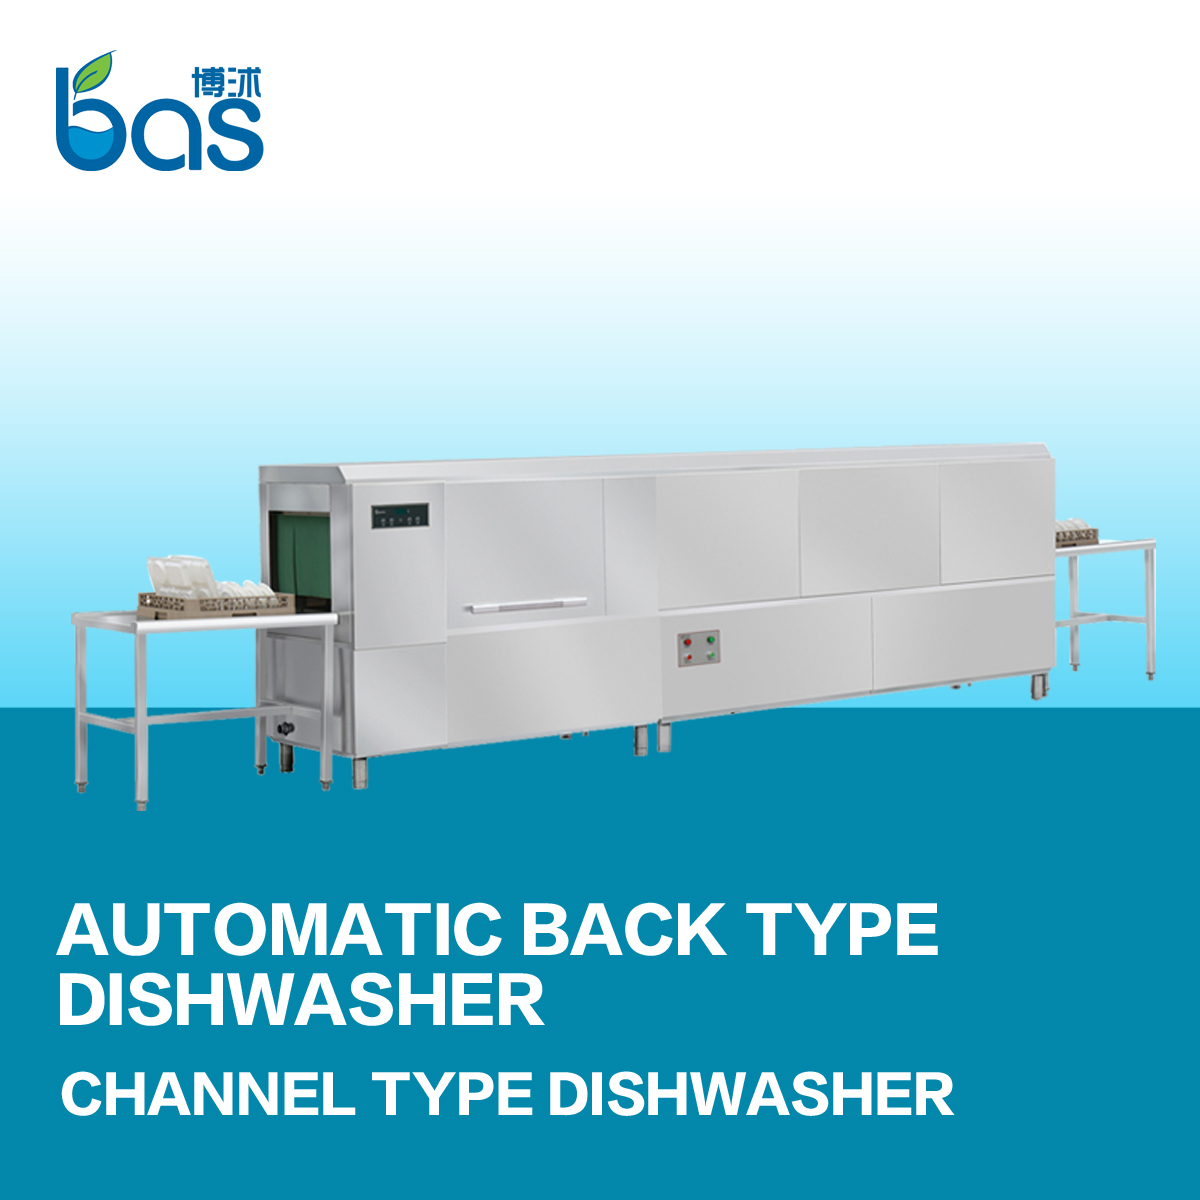 BS260B Rack Conveyor dishwasher with dryer